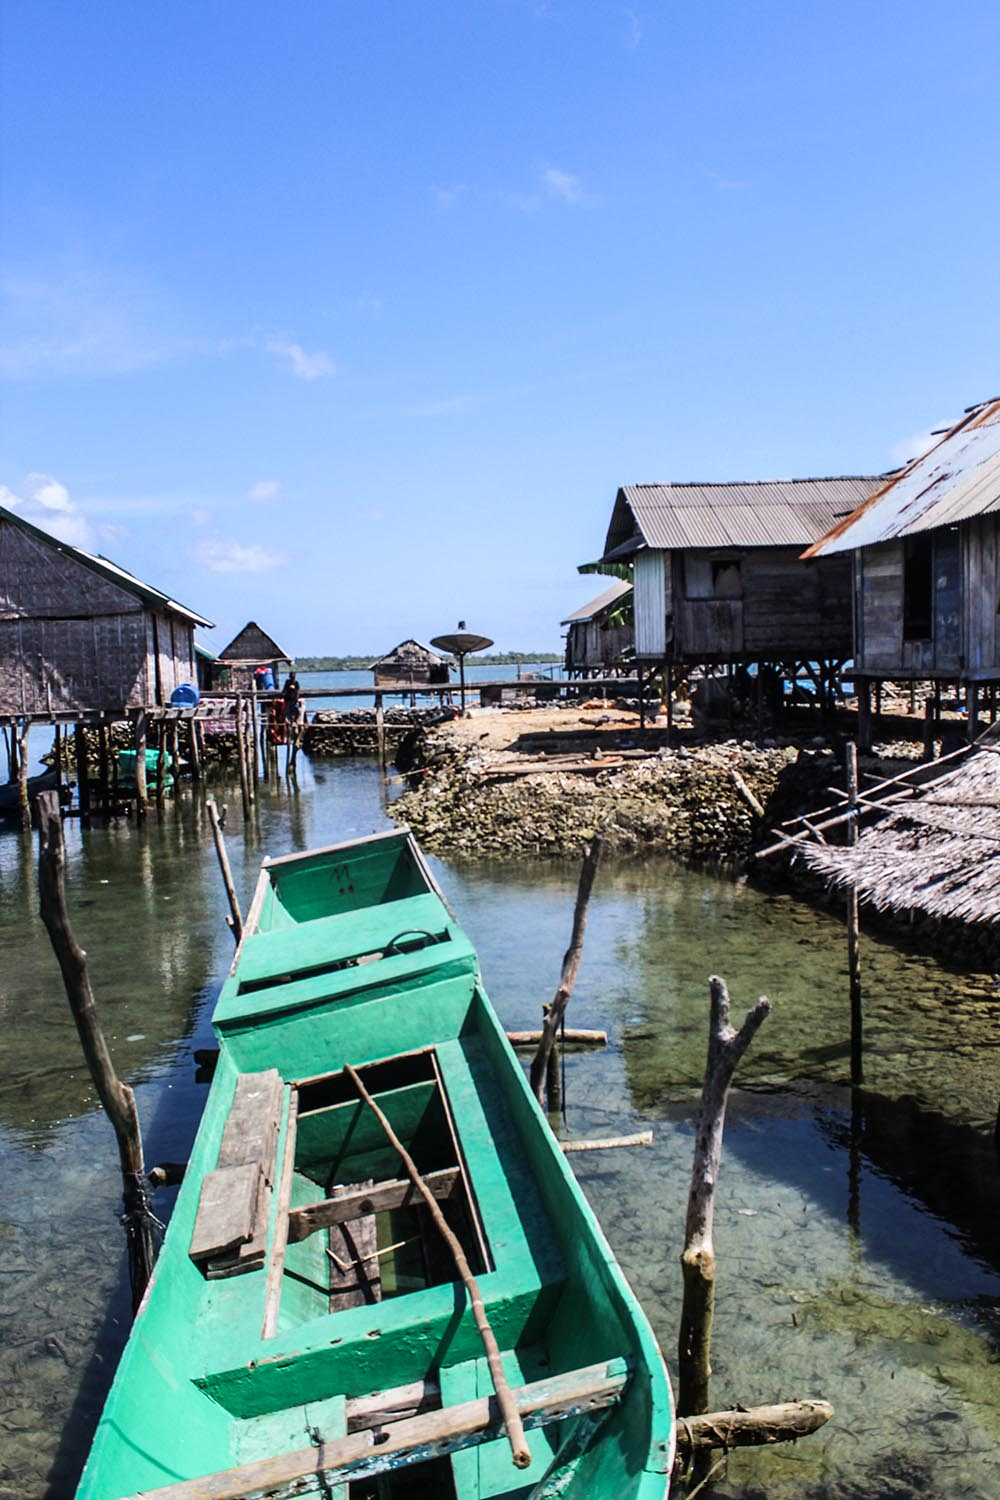 How do we meet other cultures, explore and learn without being intrusive or behave like missionaries? Some thoughts on meeting the Bajo people of Indonesia.